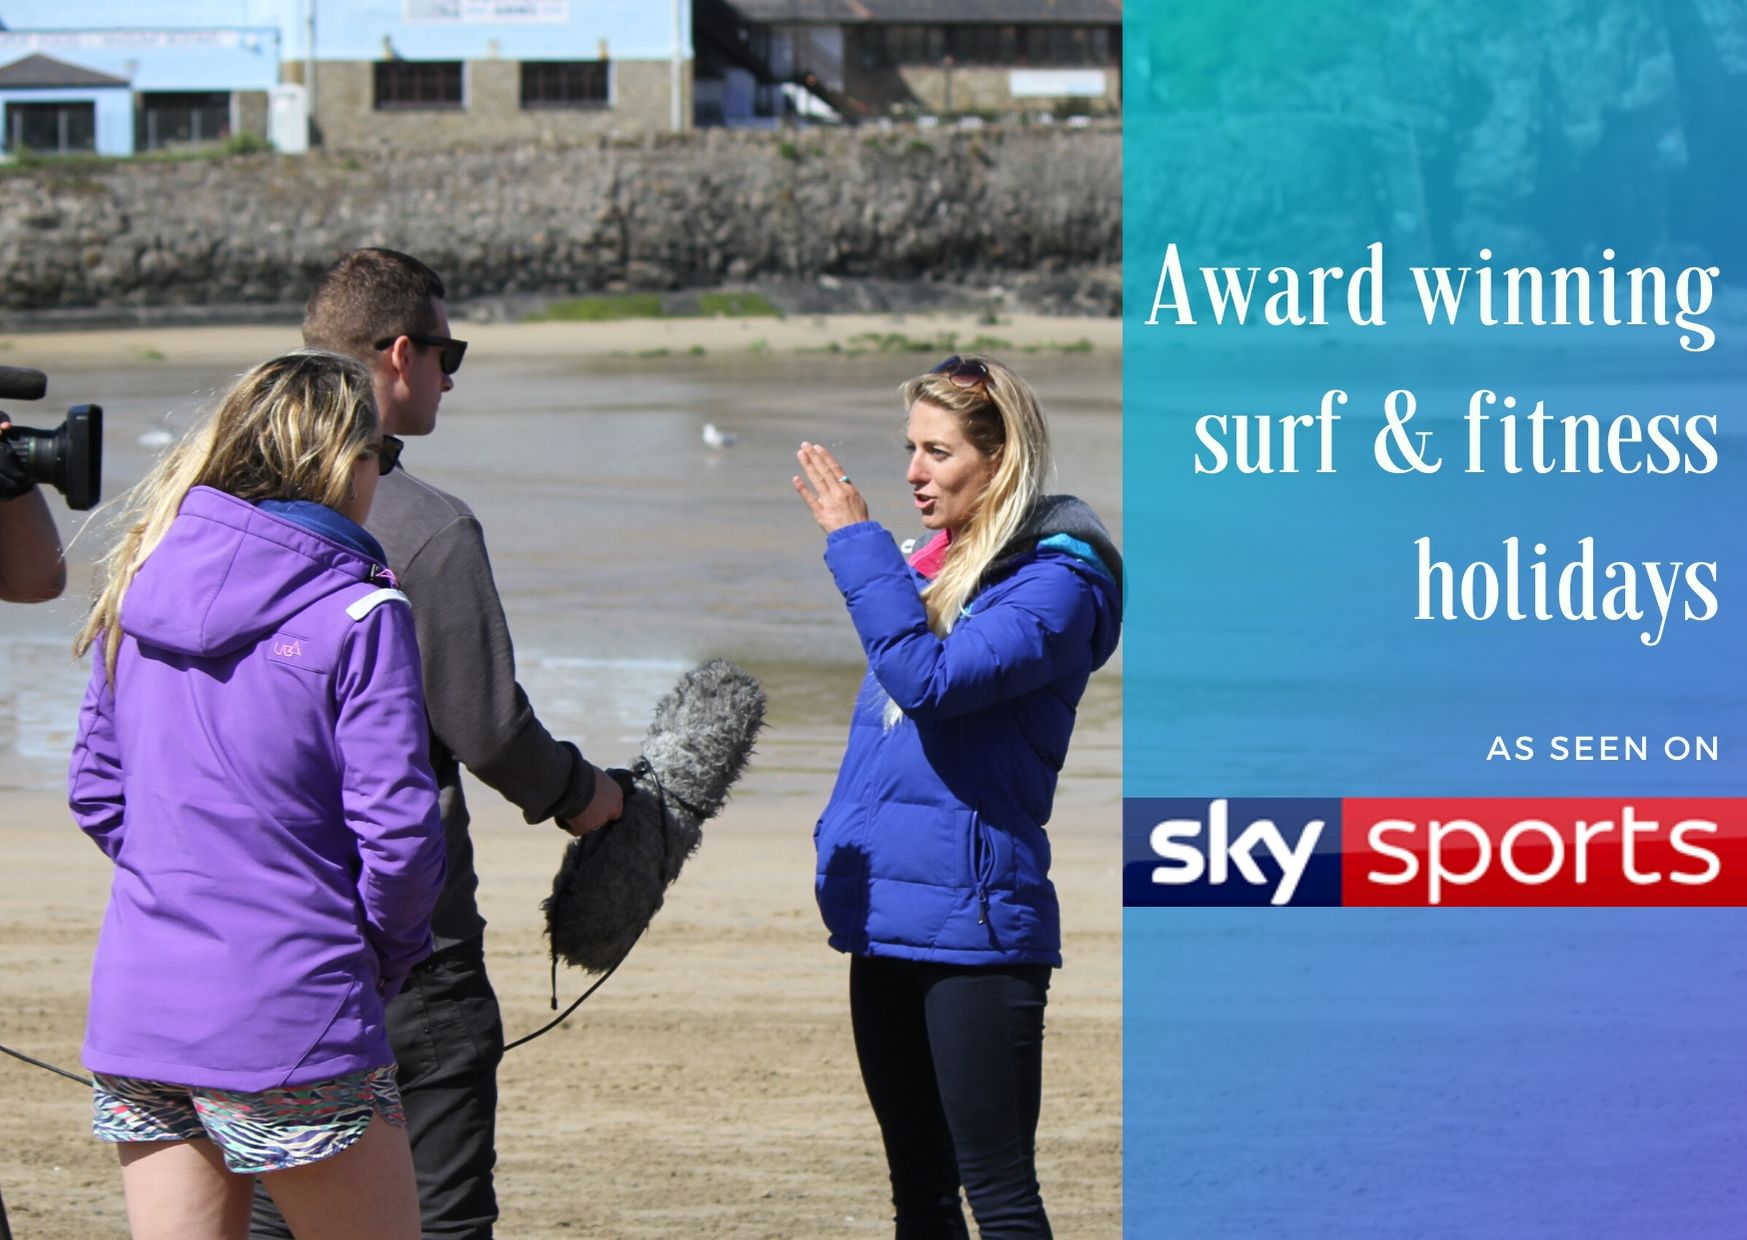 Award winning surf and fitness holidays in Fuerteventura and Cornwall. Surfing lessons, personal training, yoga and pilates with pro surfer and celebrity personal trainer Tehillah McGuinness